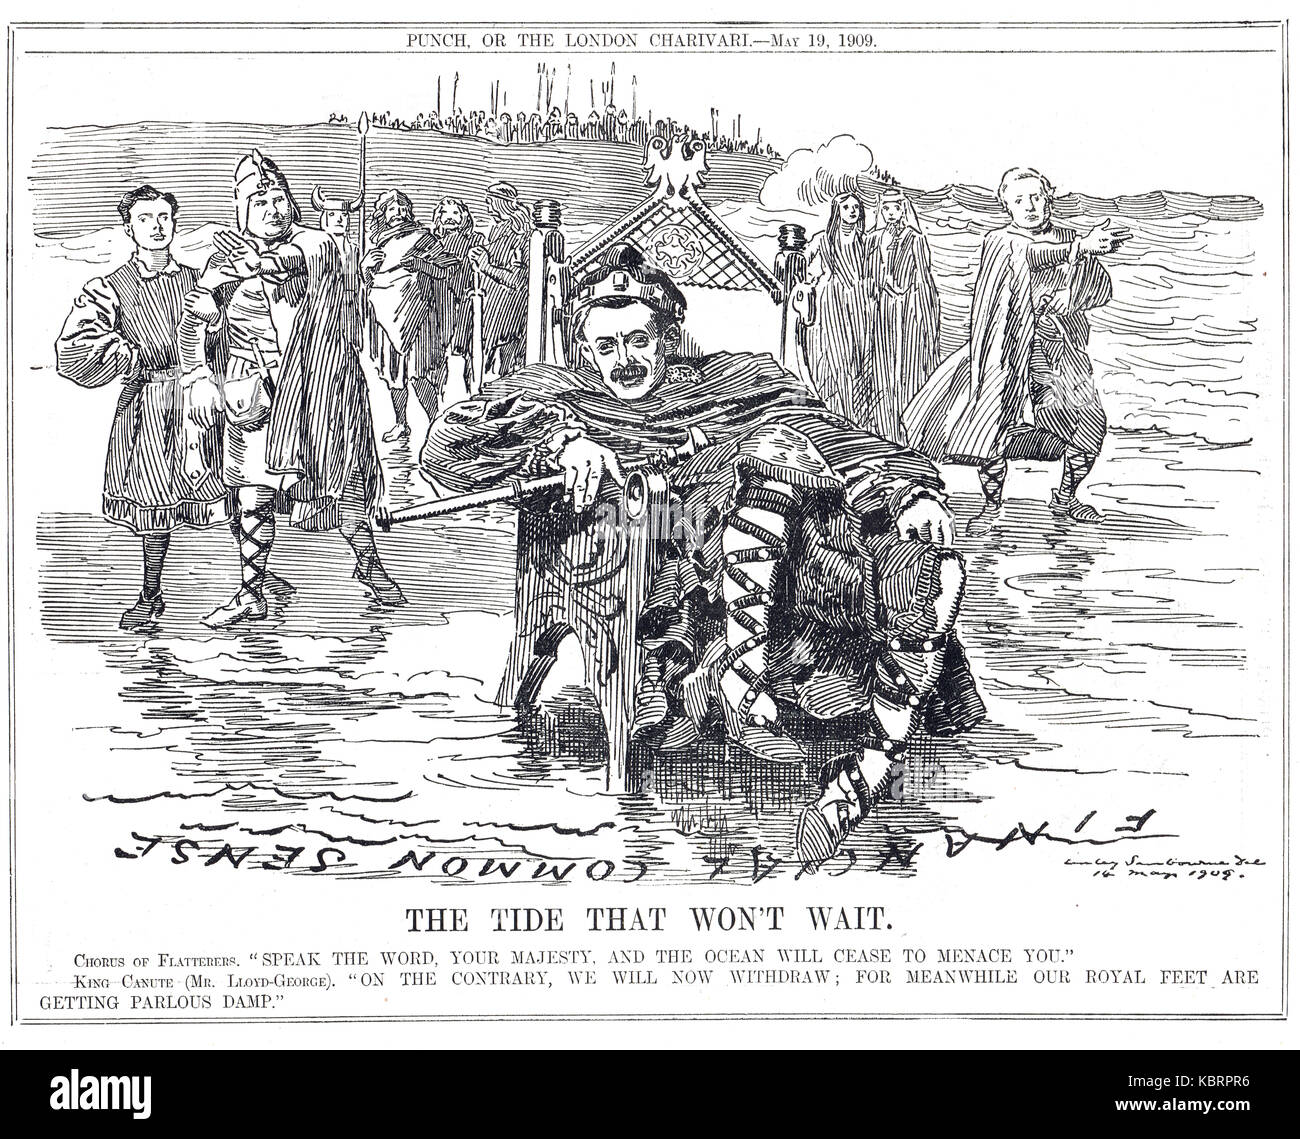 Lloyd George as Cnut the great or Canute, the dreadnought question, Punch 1909 - Stock Image